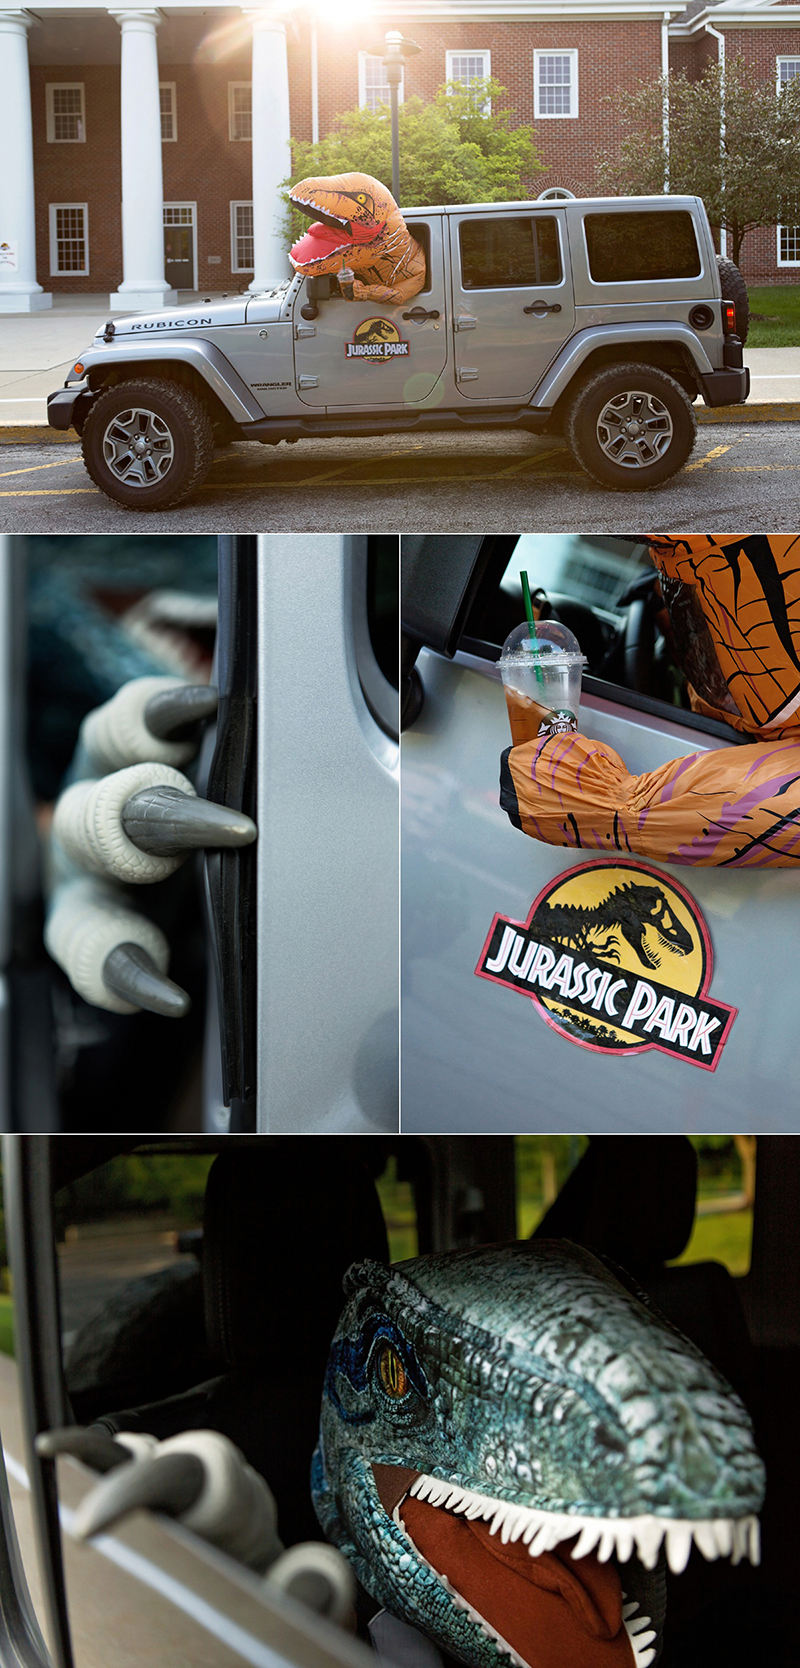 Jurassic Park Back to School photoshoot